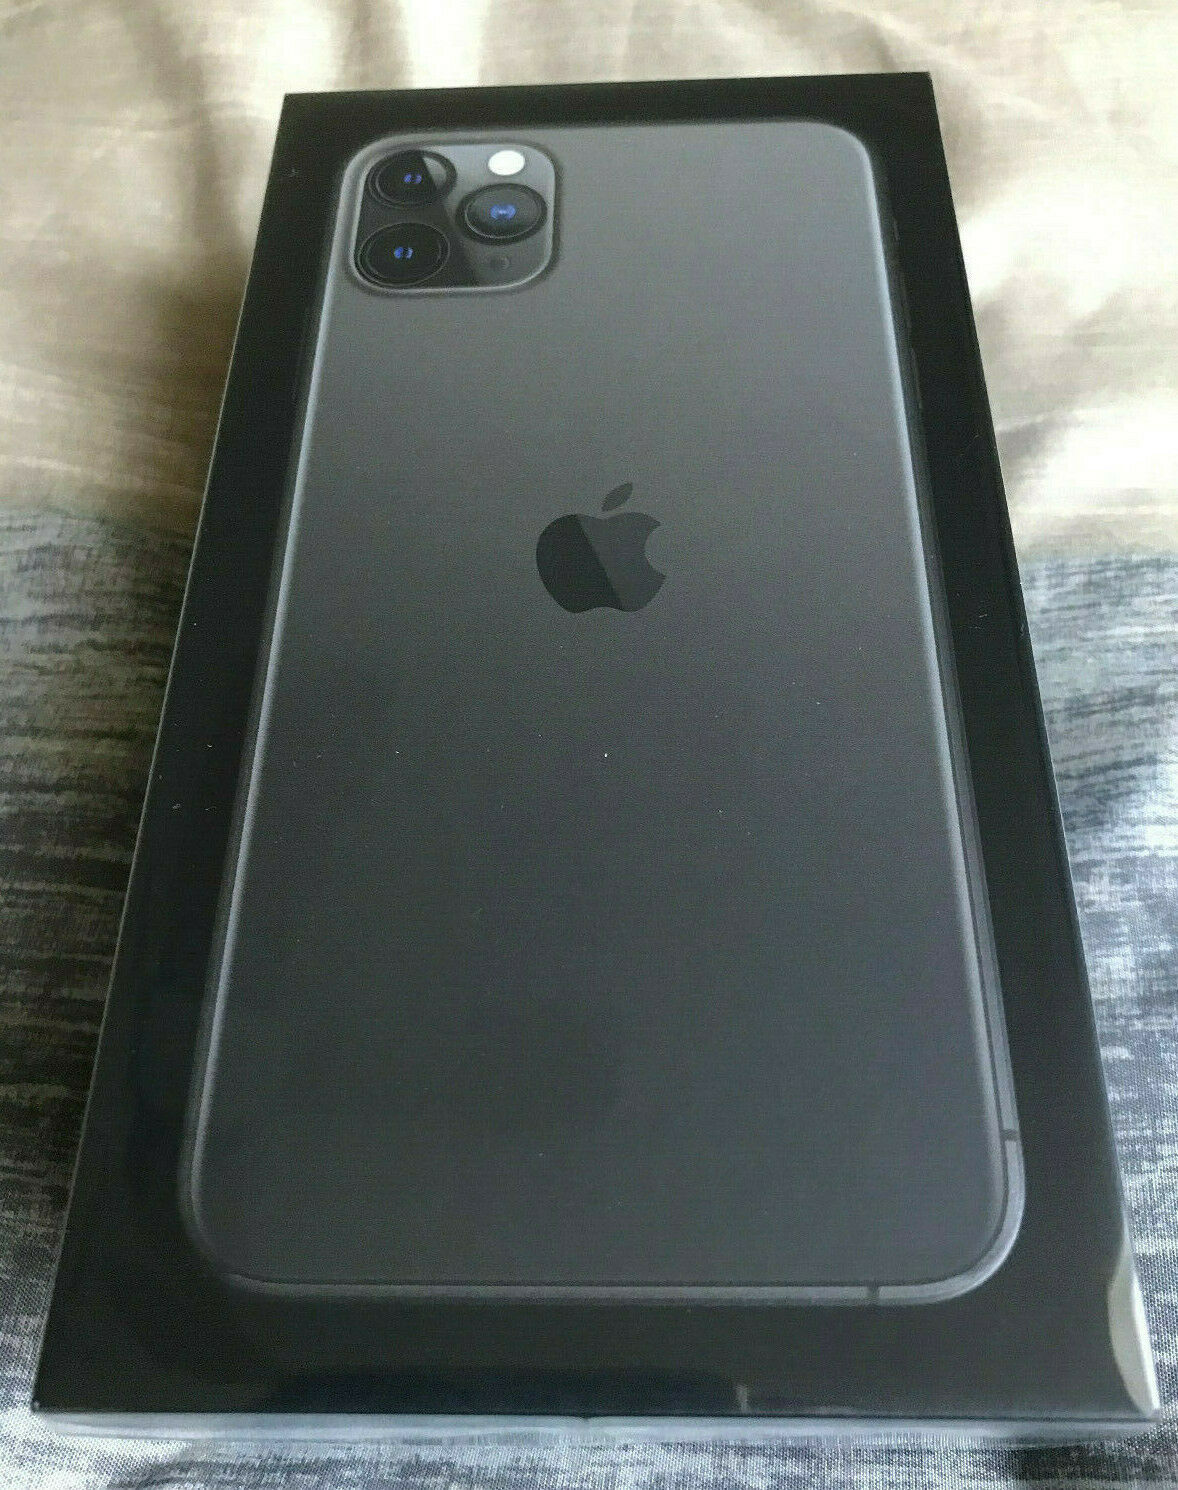 New Apple Iphone 11 Pro Max 64gb Space Gray Factory Unlocked